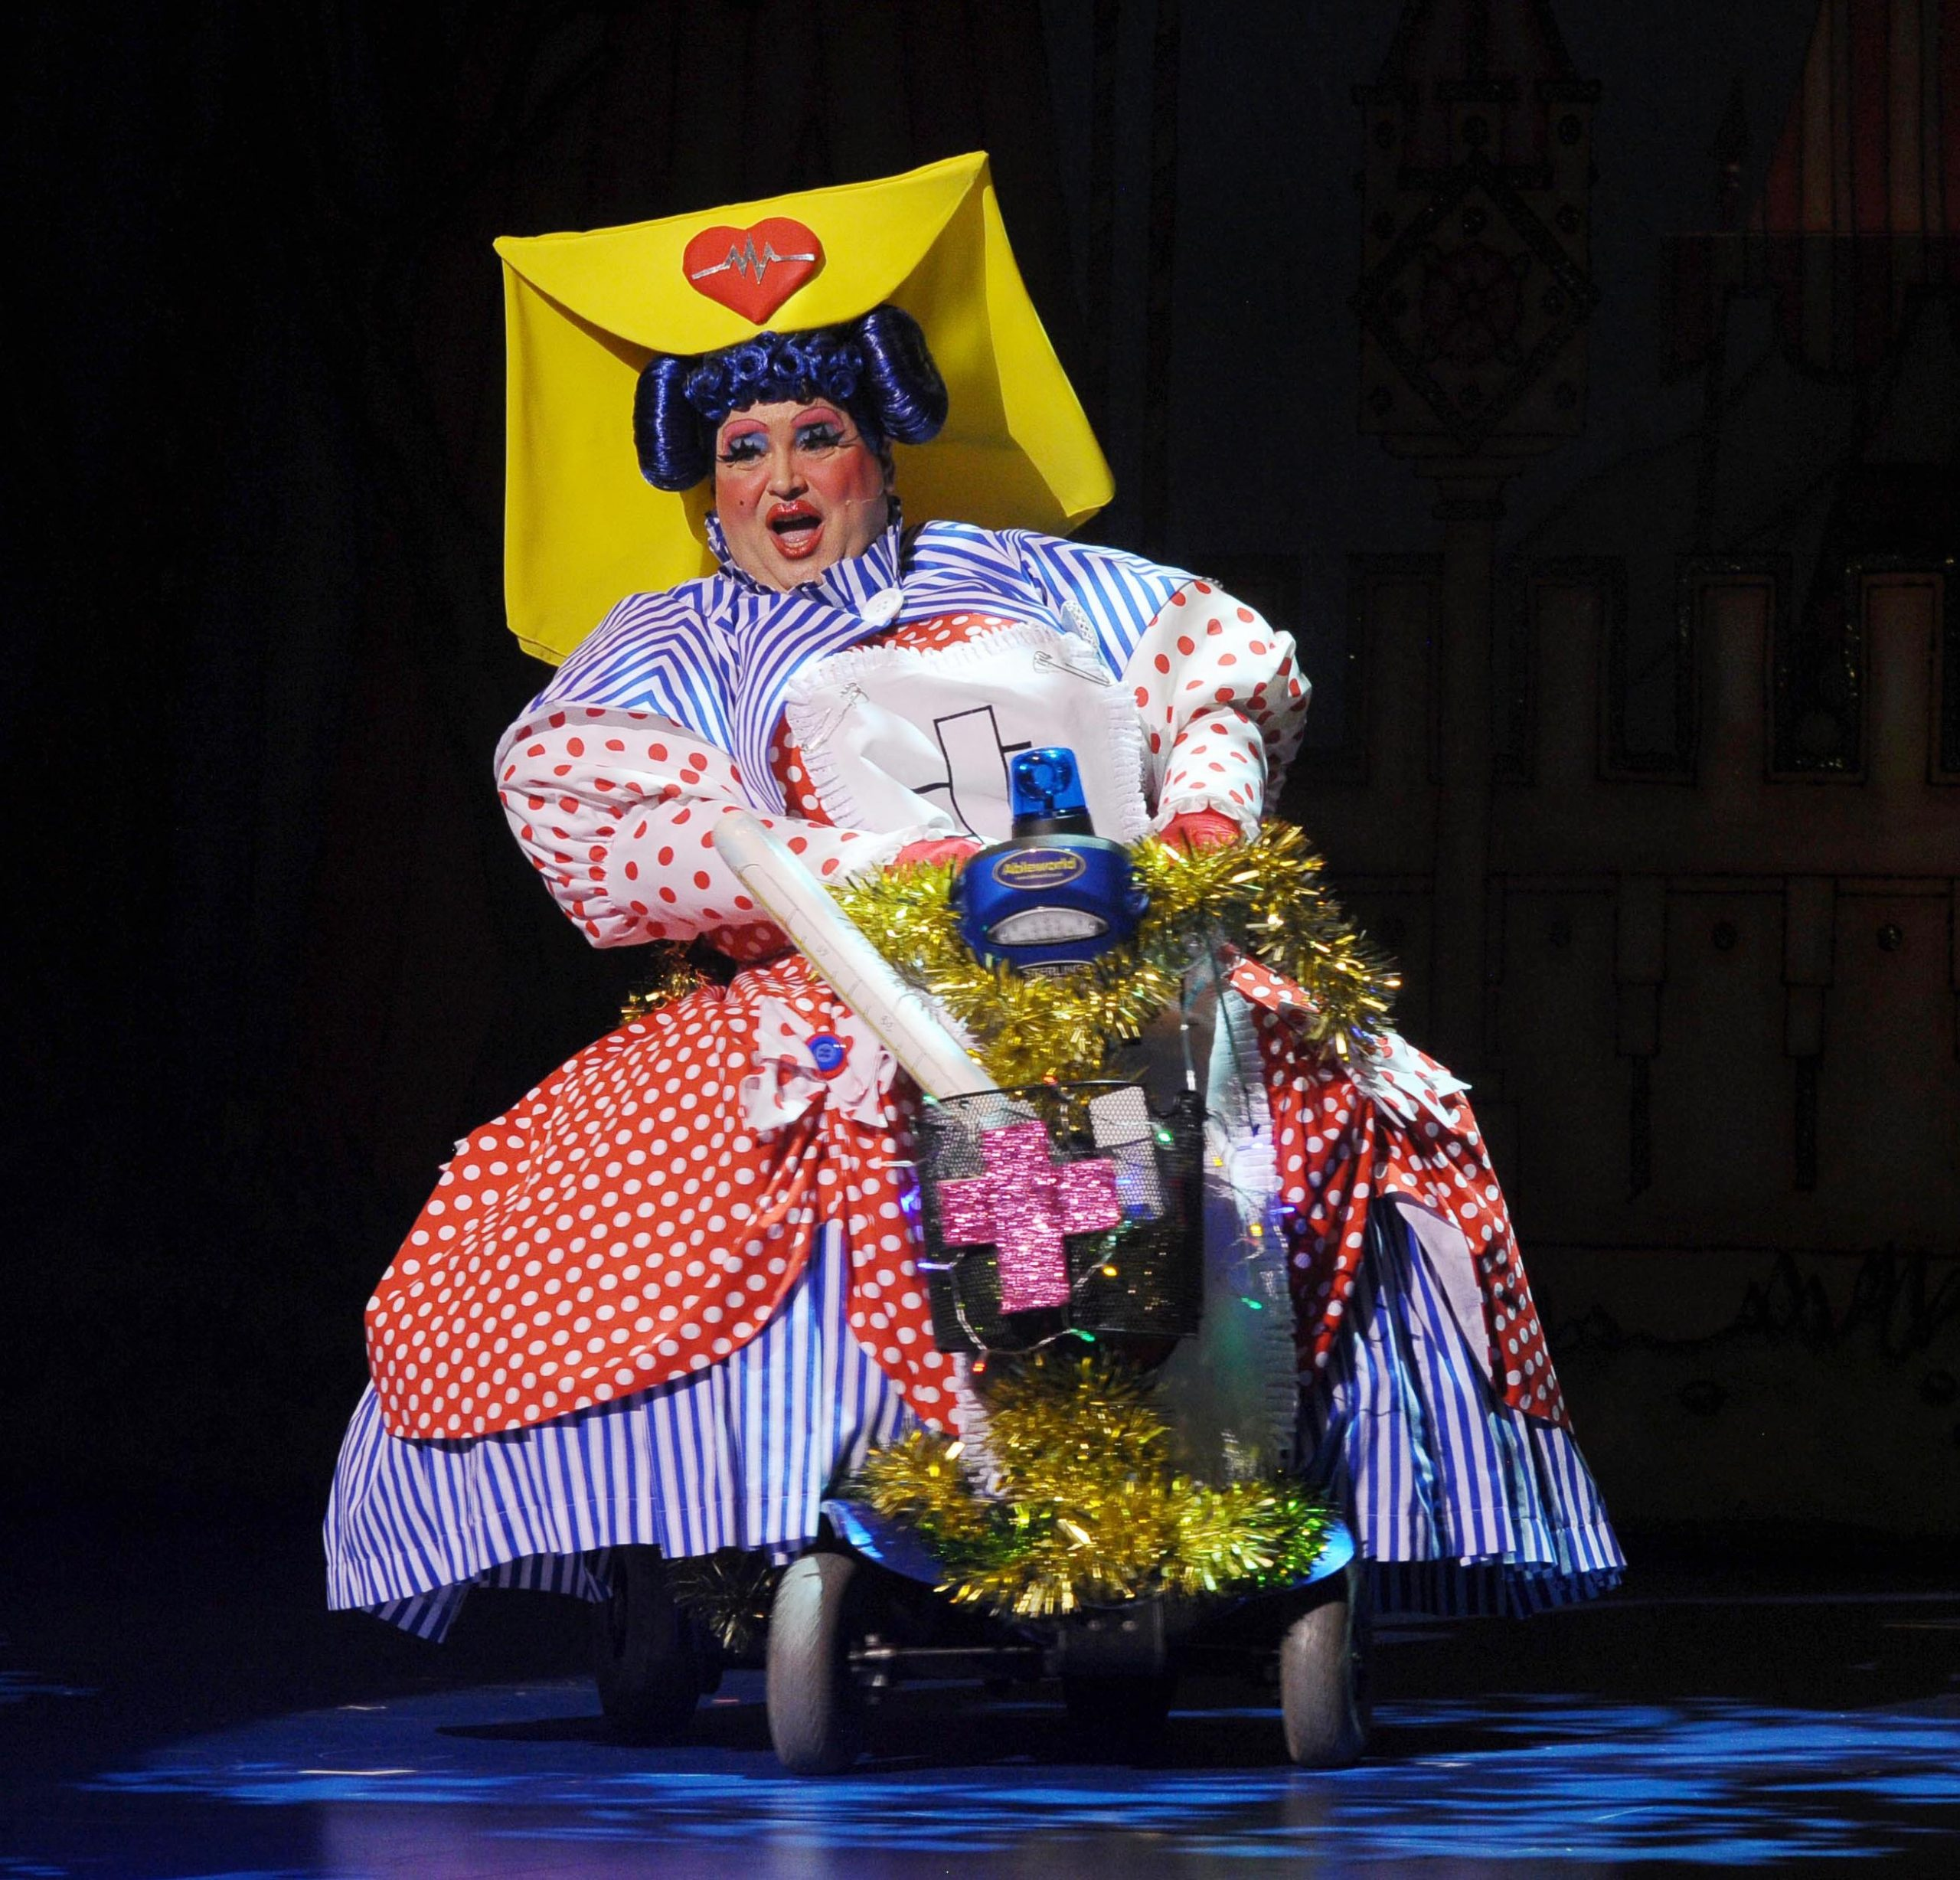 sleeping beauty panto christian patterson as dame